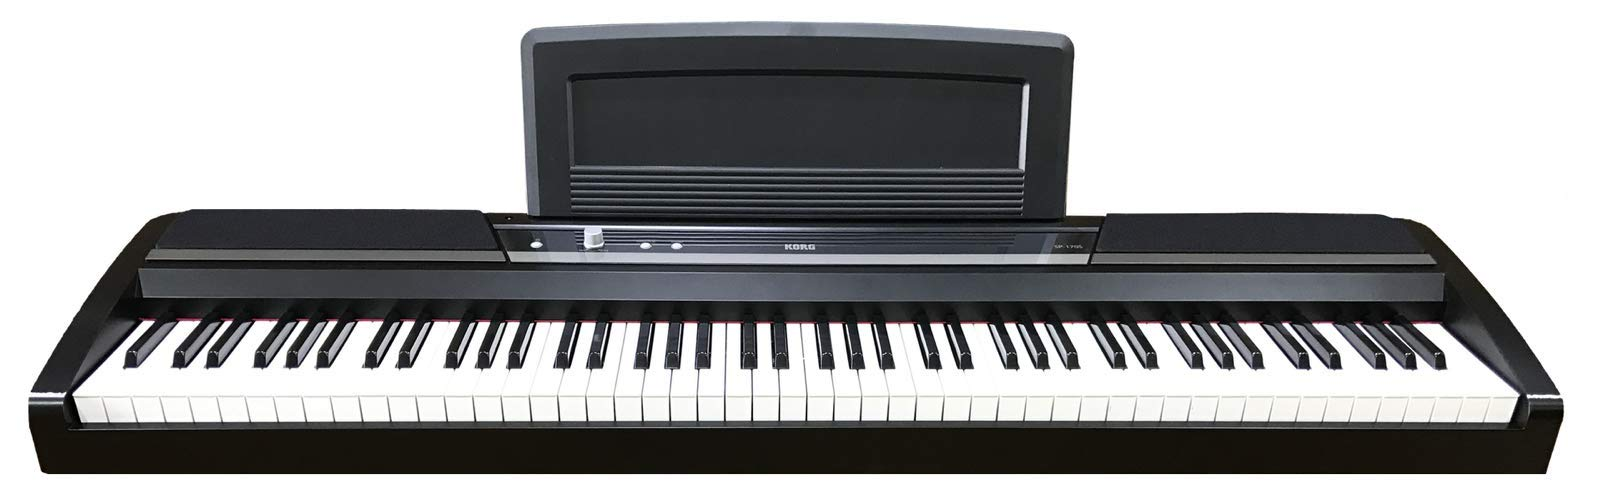 Korg SP170s - 88 - Key Digital Piano in Black